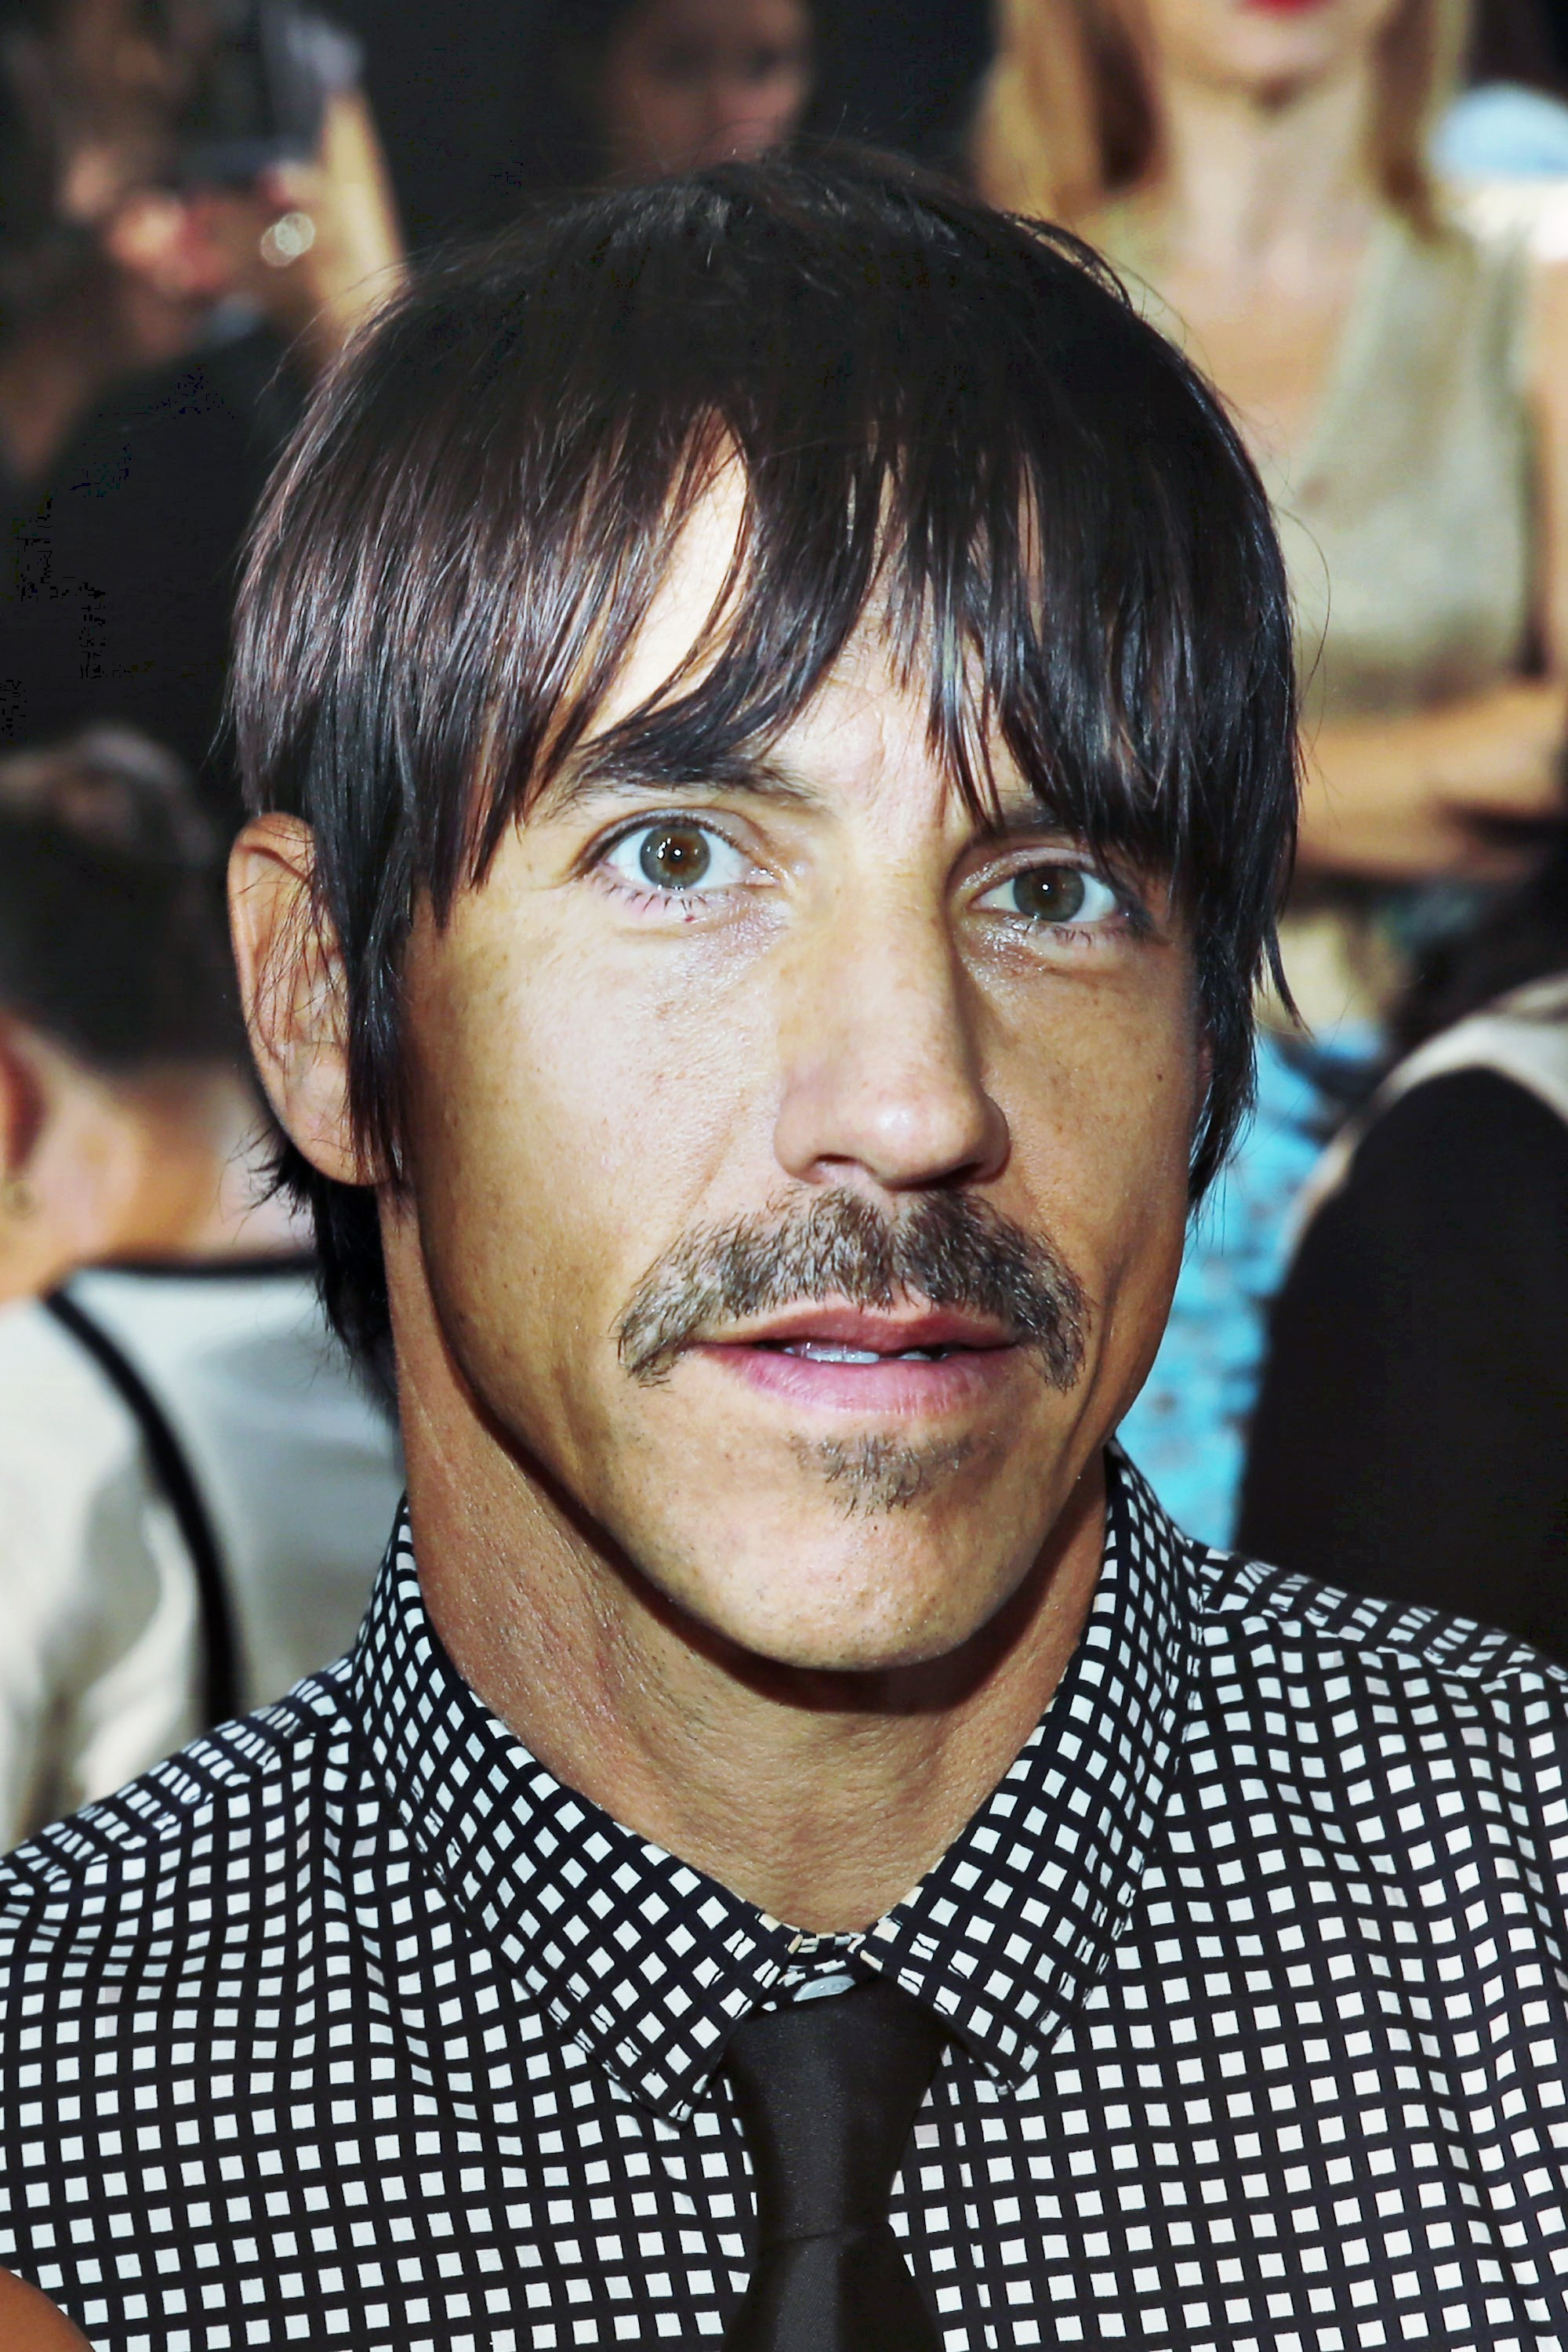 Anthony Kiedis   Known people - famous people news and ...